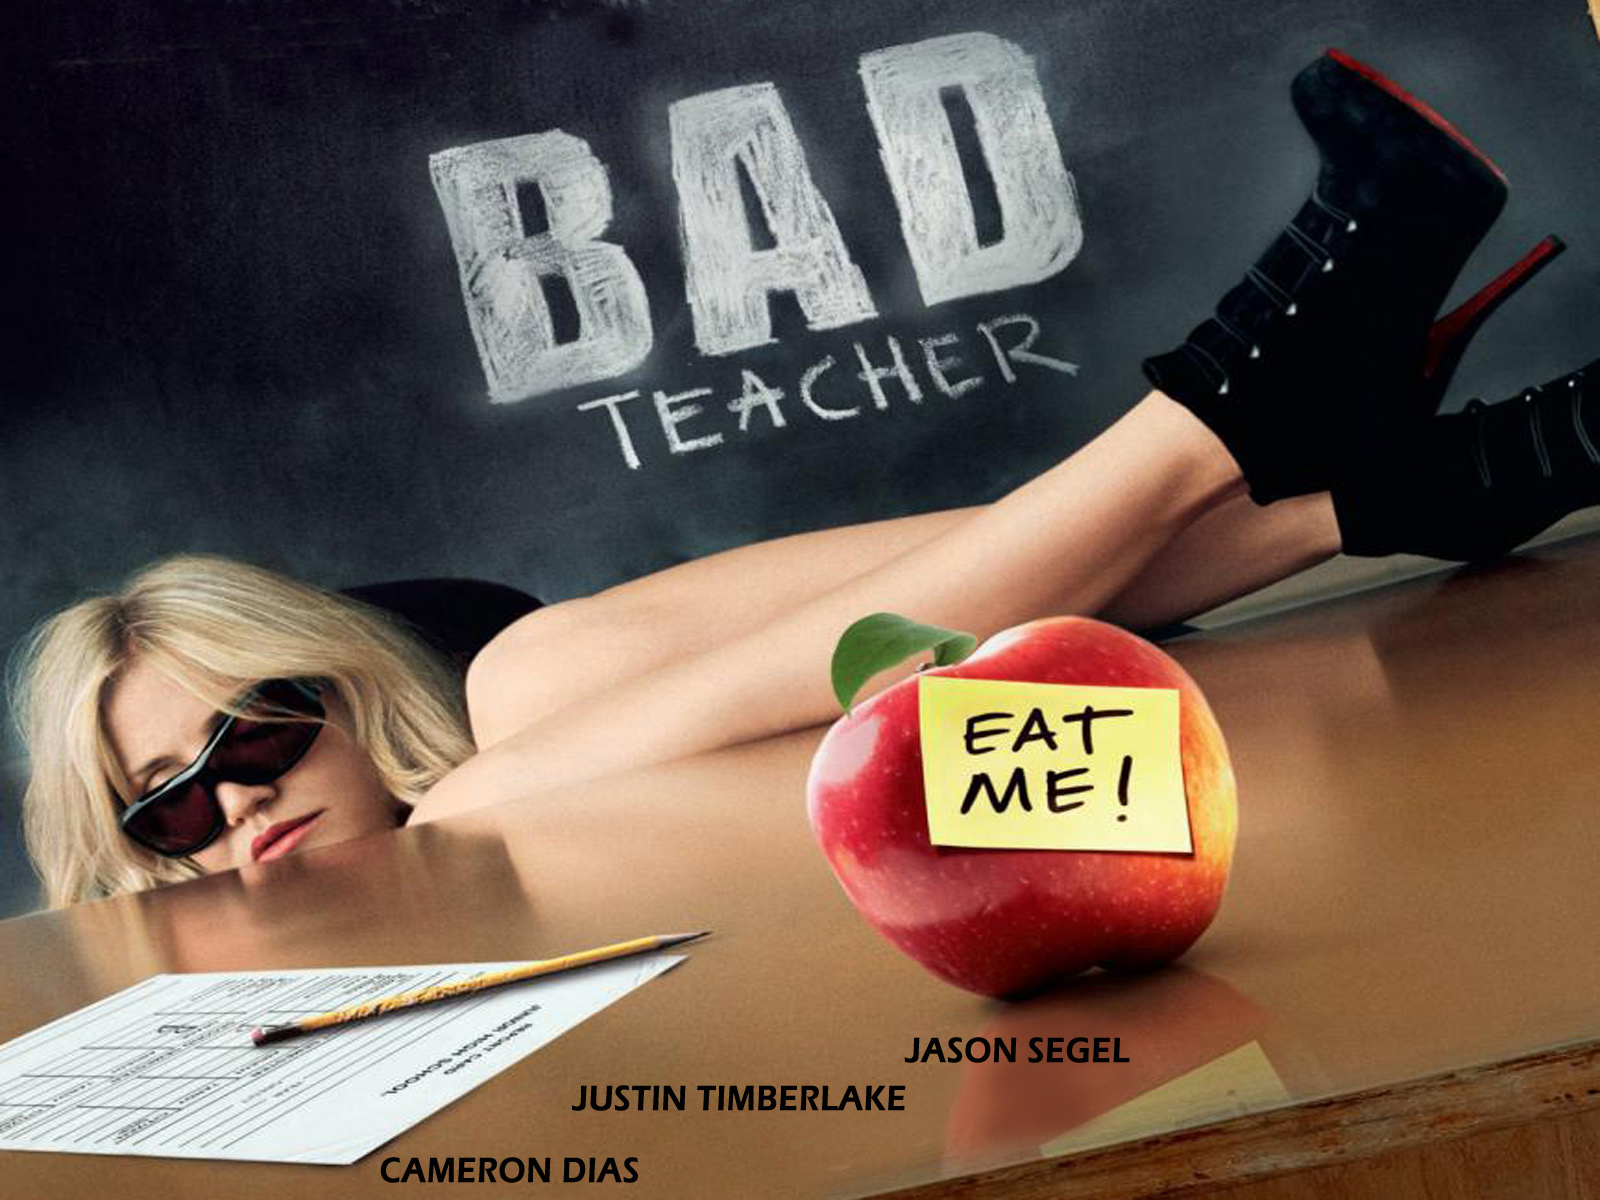 Bad Teacher movie